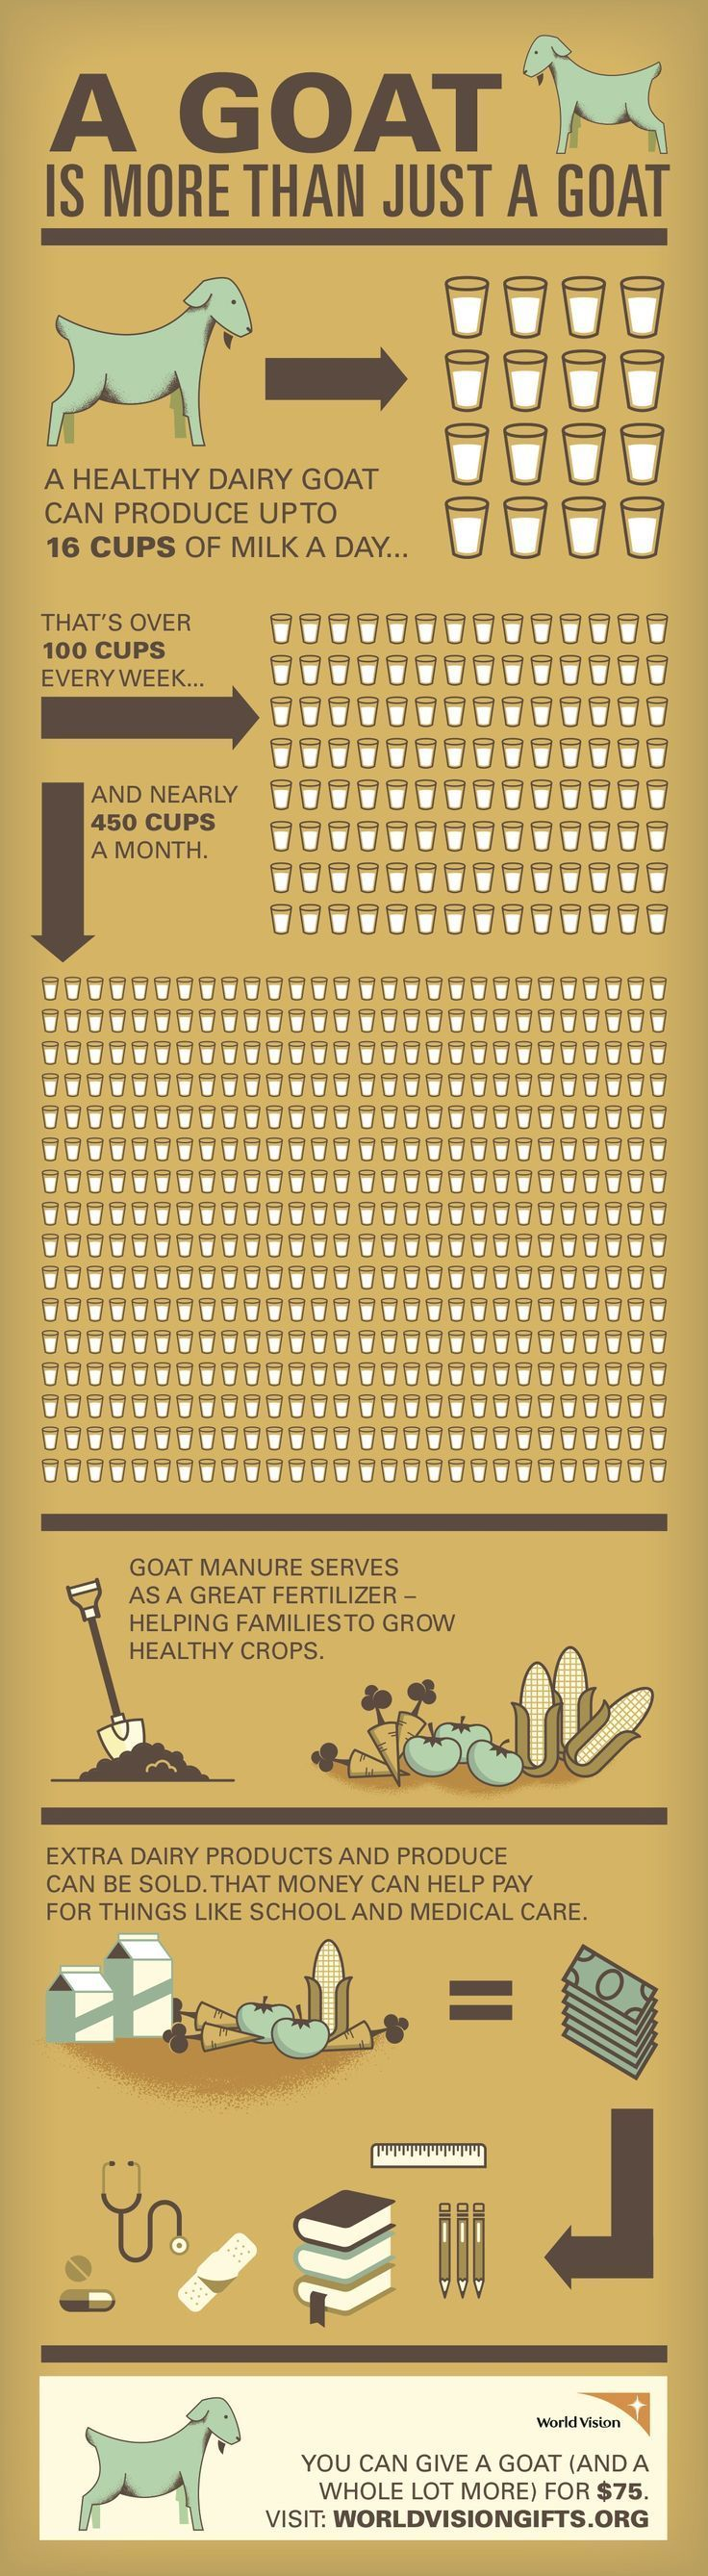 $75 – Goat: Check out our infographic to get a better idea of how a simple gift through our Gift Catalog can become a sustainable means by which a child, family, and even entire community can escape poverty! #WorldVision #GiftCatalog http://blog.worldvision.org/gift-catalog/a-goat-is-more-than-just-a-goat?&campaign=1259075